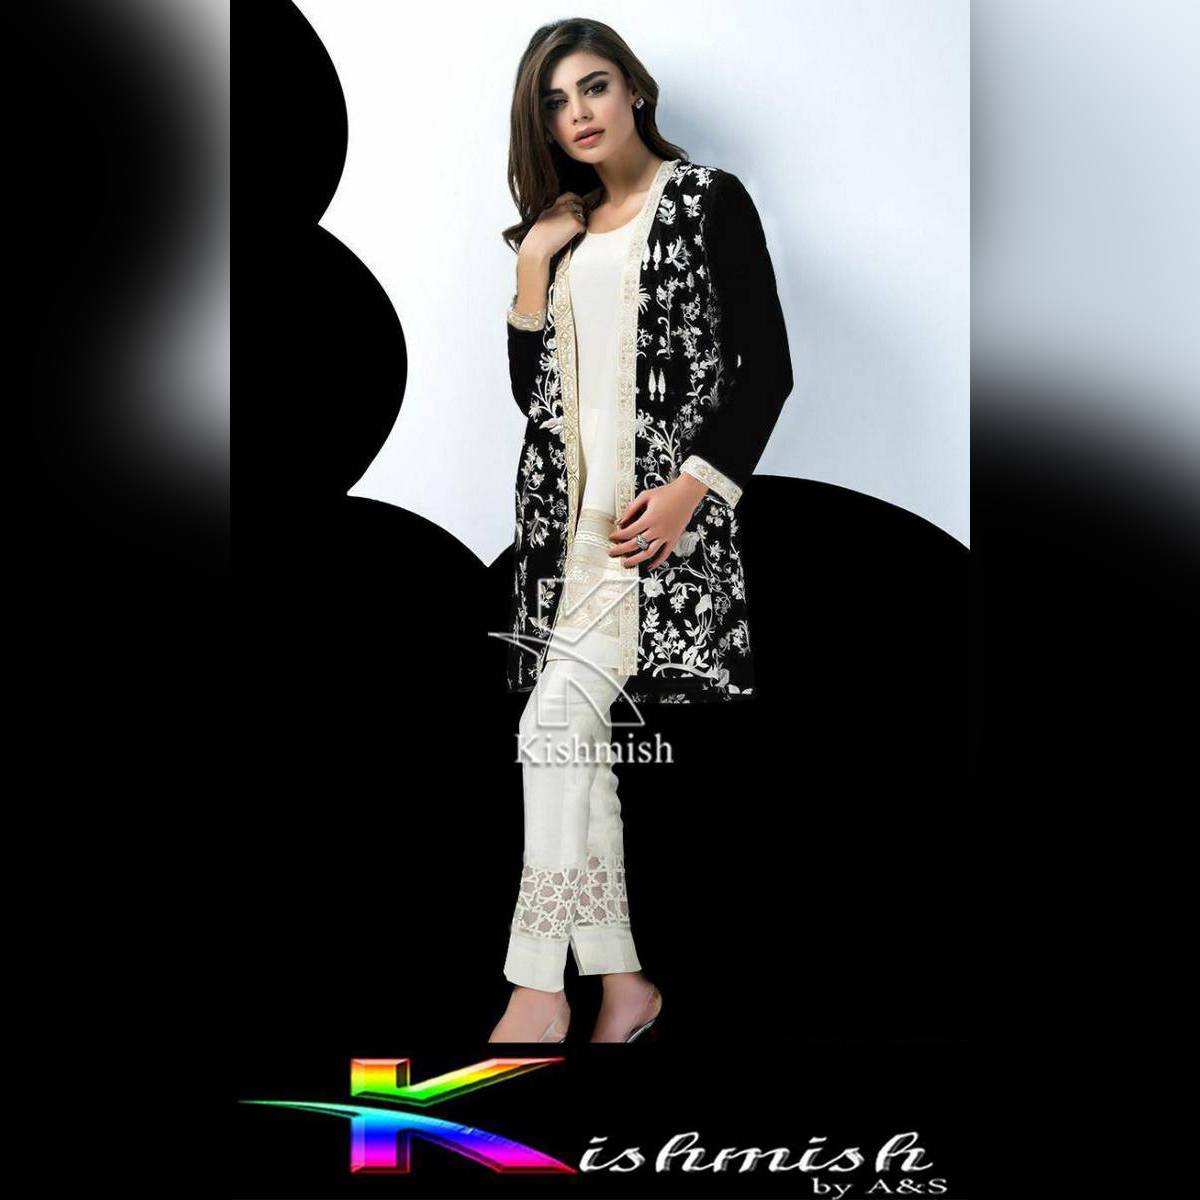 Kishmish Royal Embroidered Blazer (Coaty) for her by Festive Collection